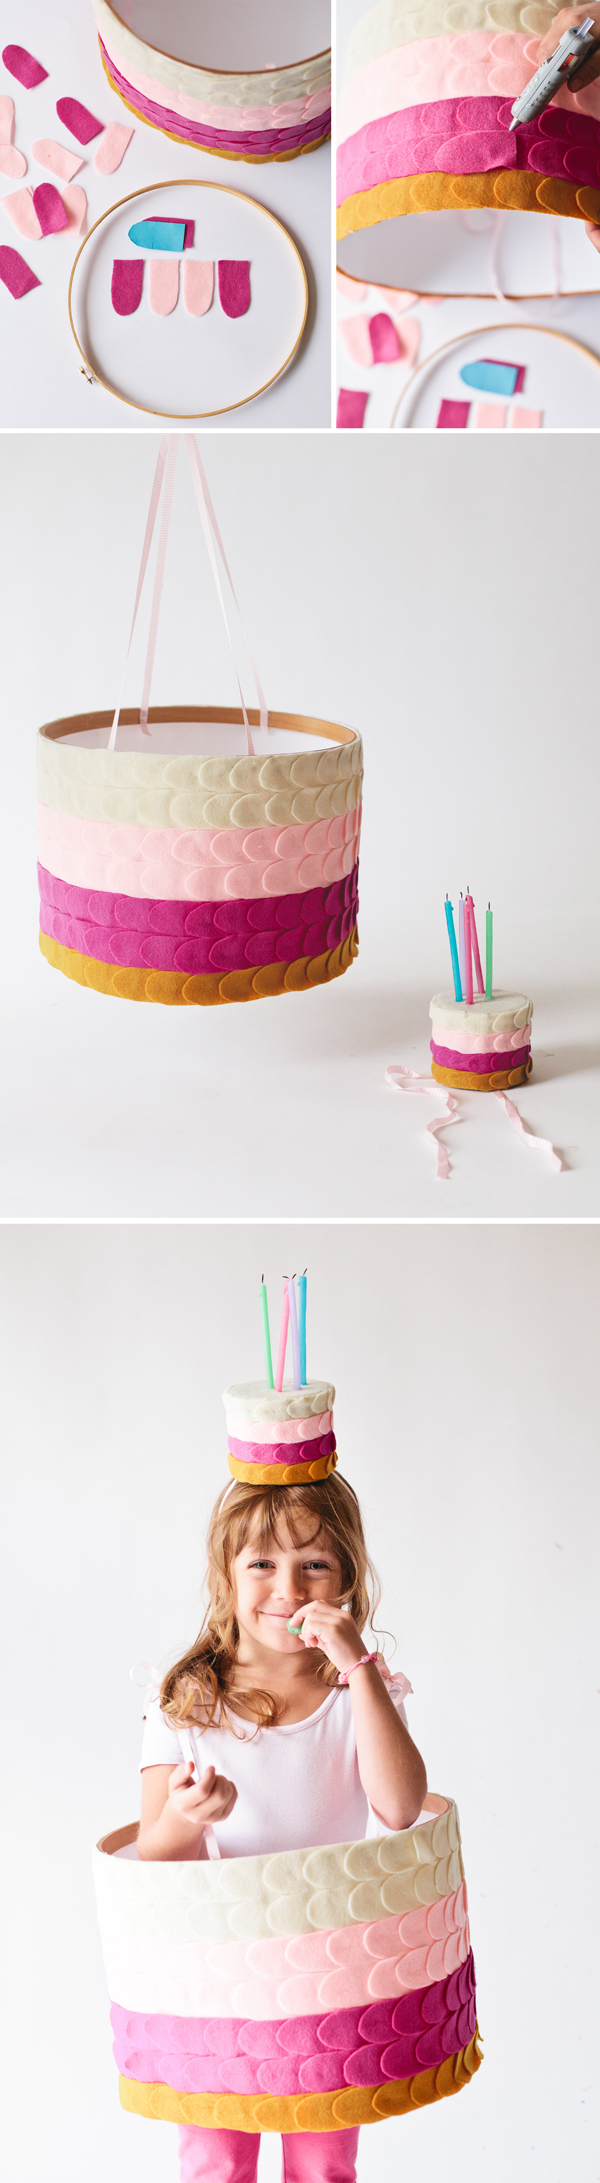 How to make a birthday cake costume